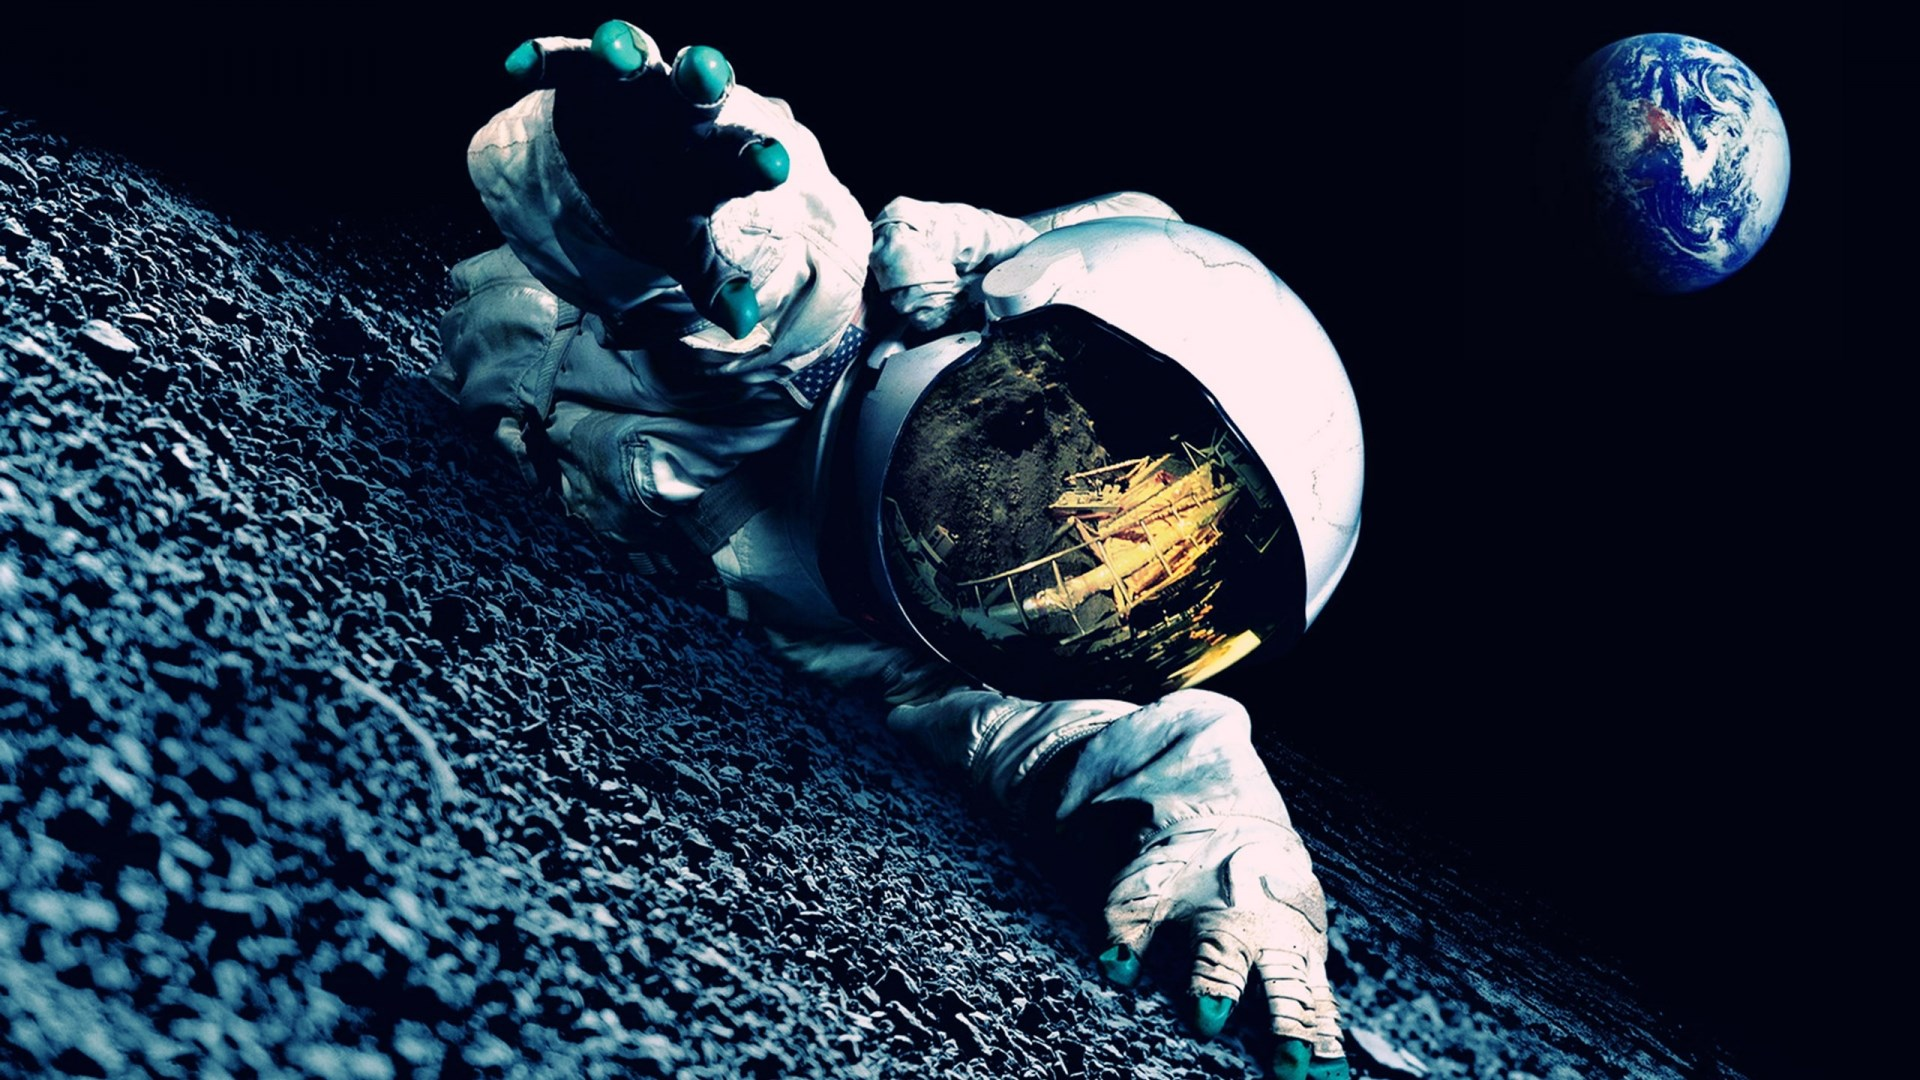 3d Wallpaper S8 Astronaut Mood Earth Planets Mask 1920 X 1080